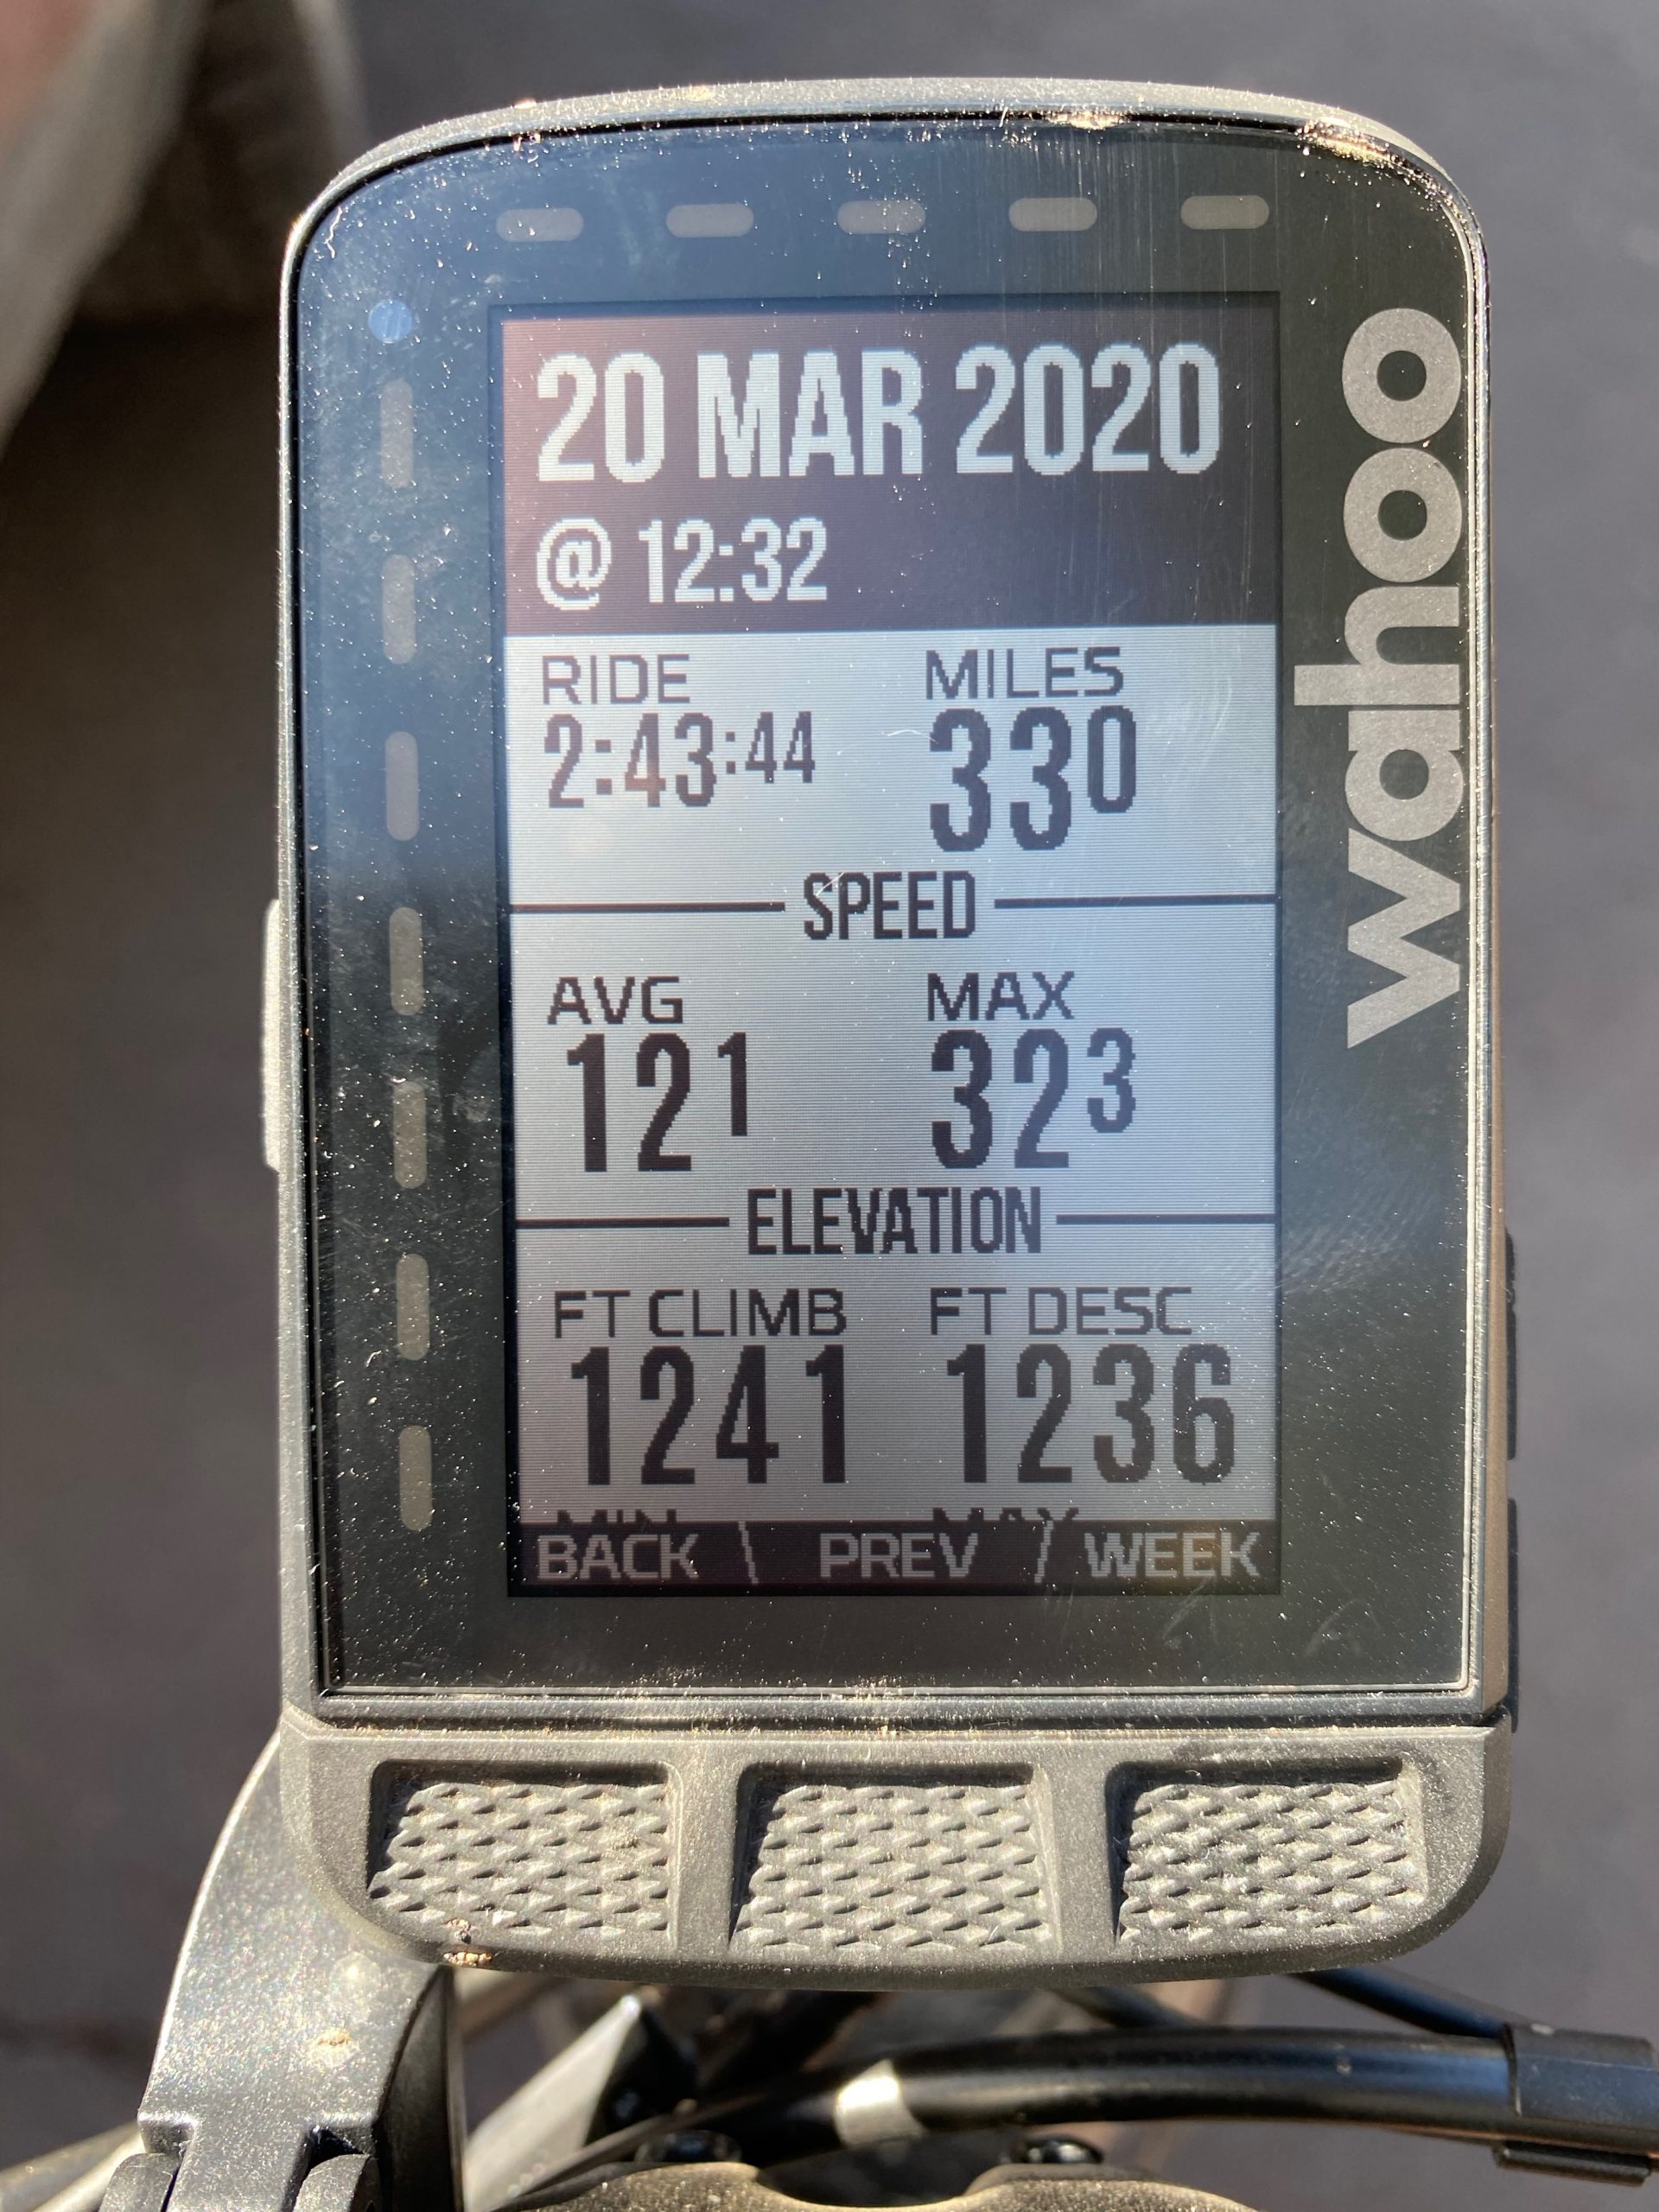 Gravel Girl's ride metrics from the In Plain View route from Dirty Freehub on her Wahoo Roam device.